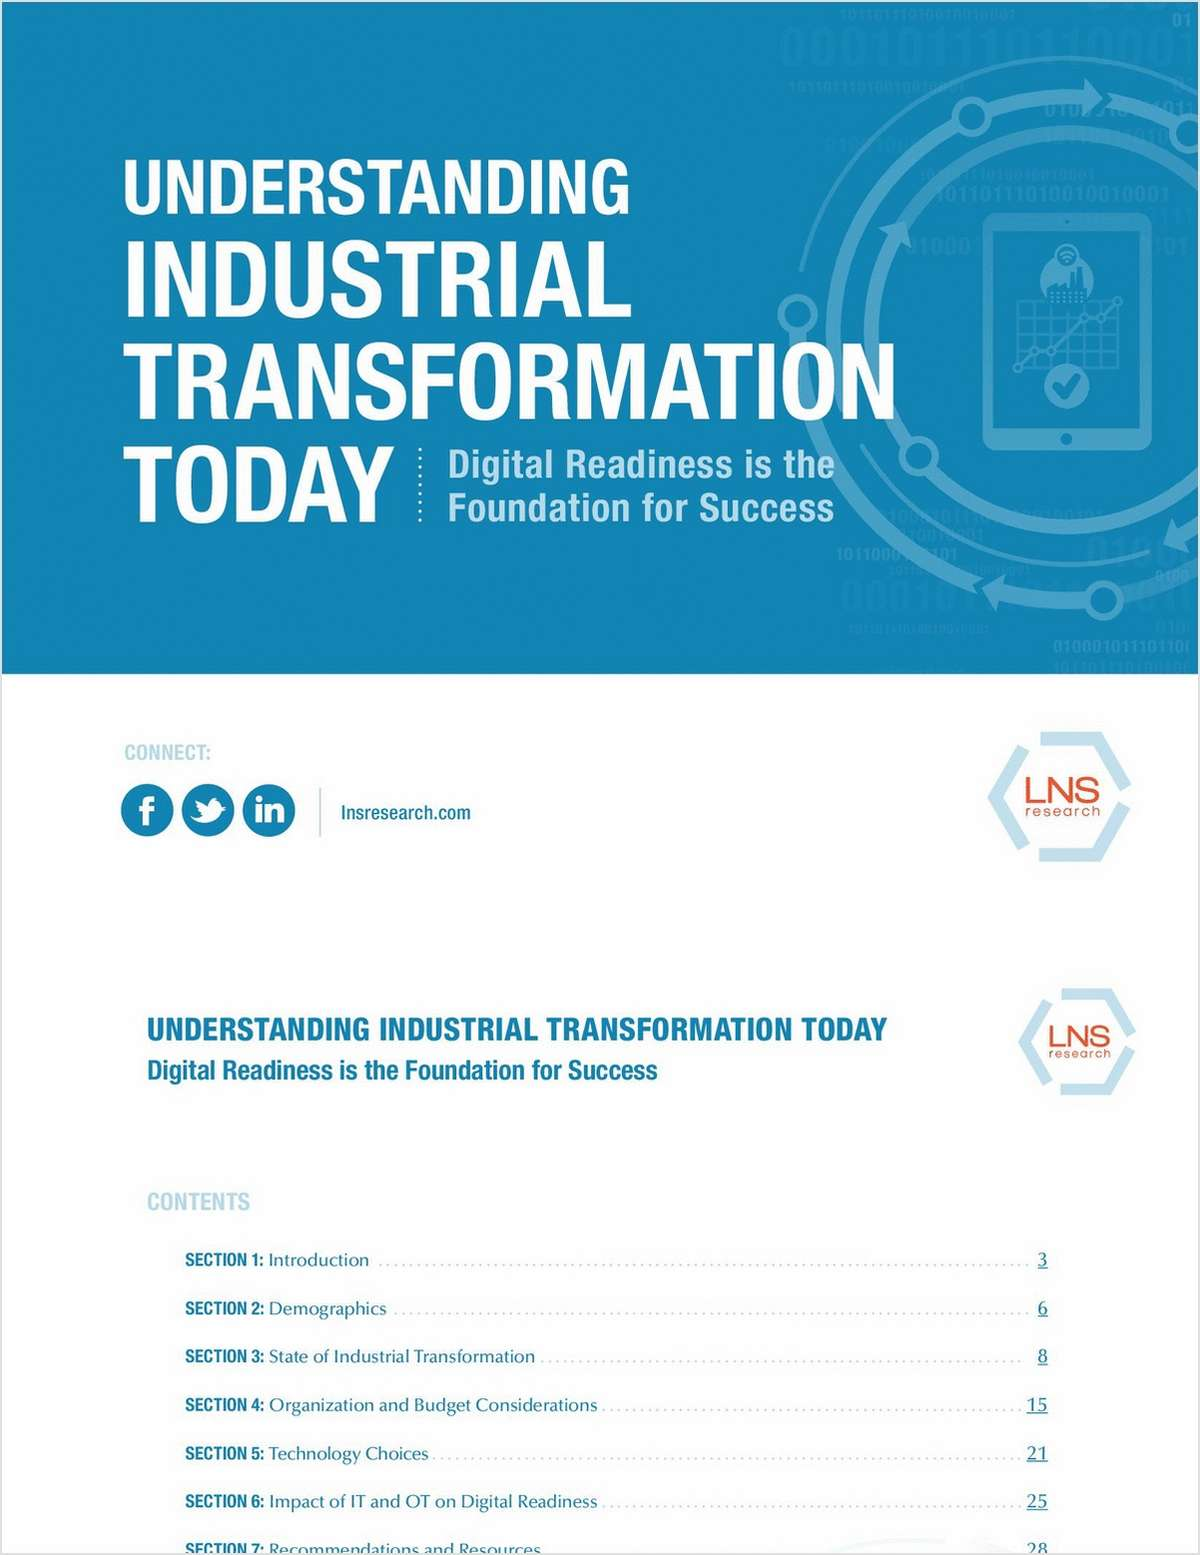 Understanding the Industrial Transformation Today